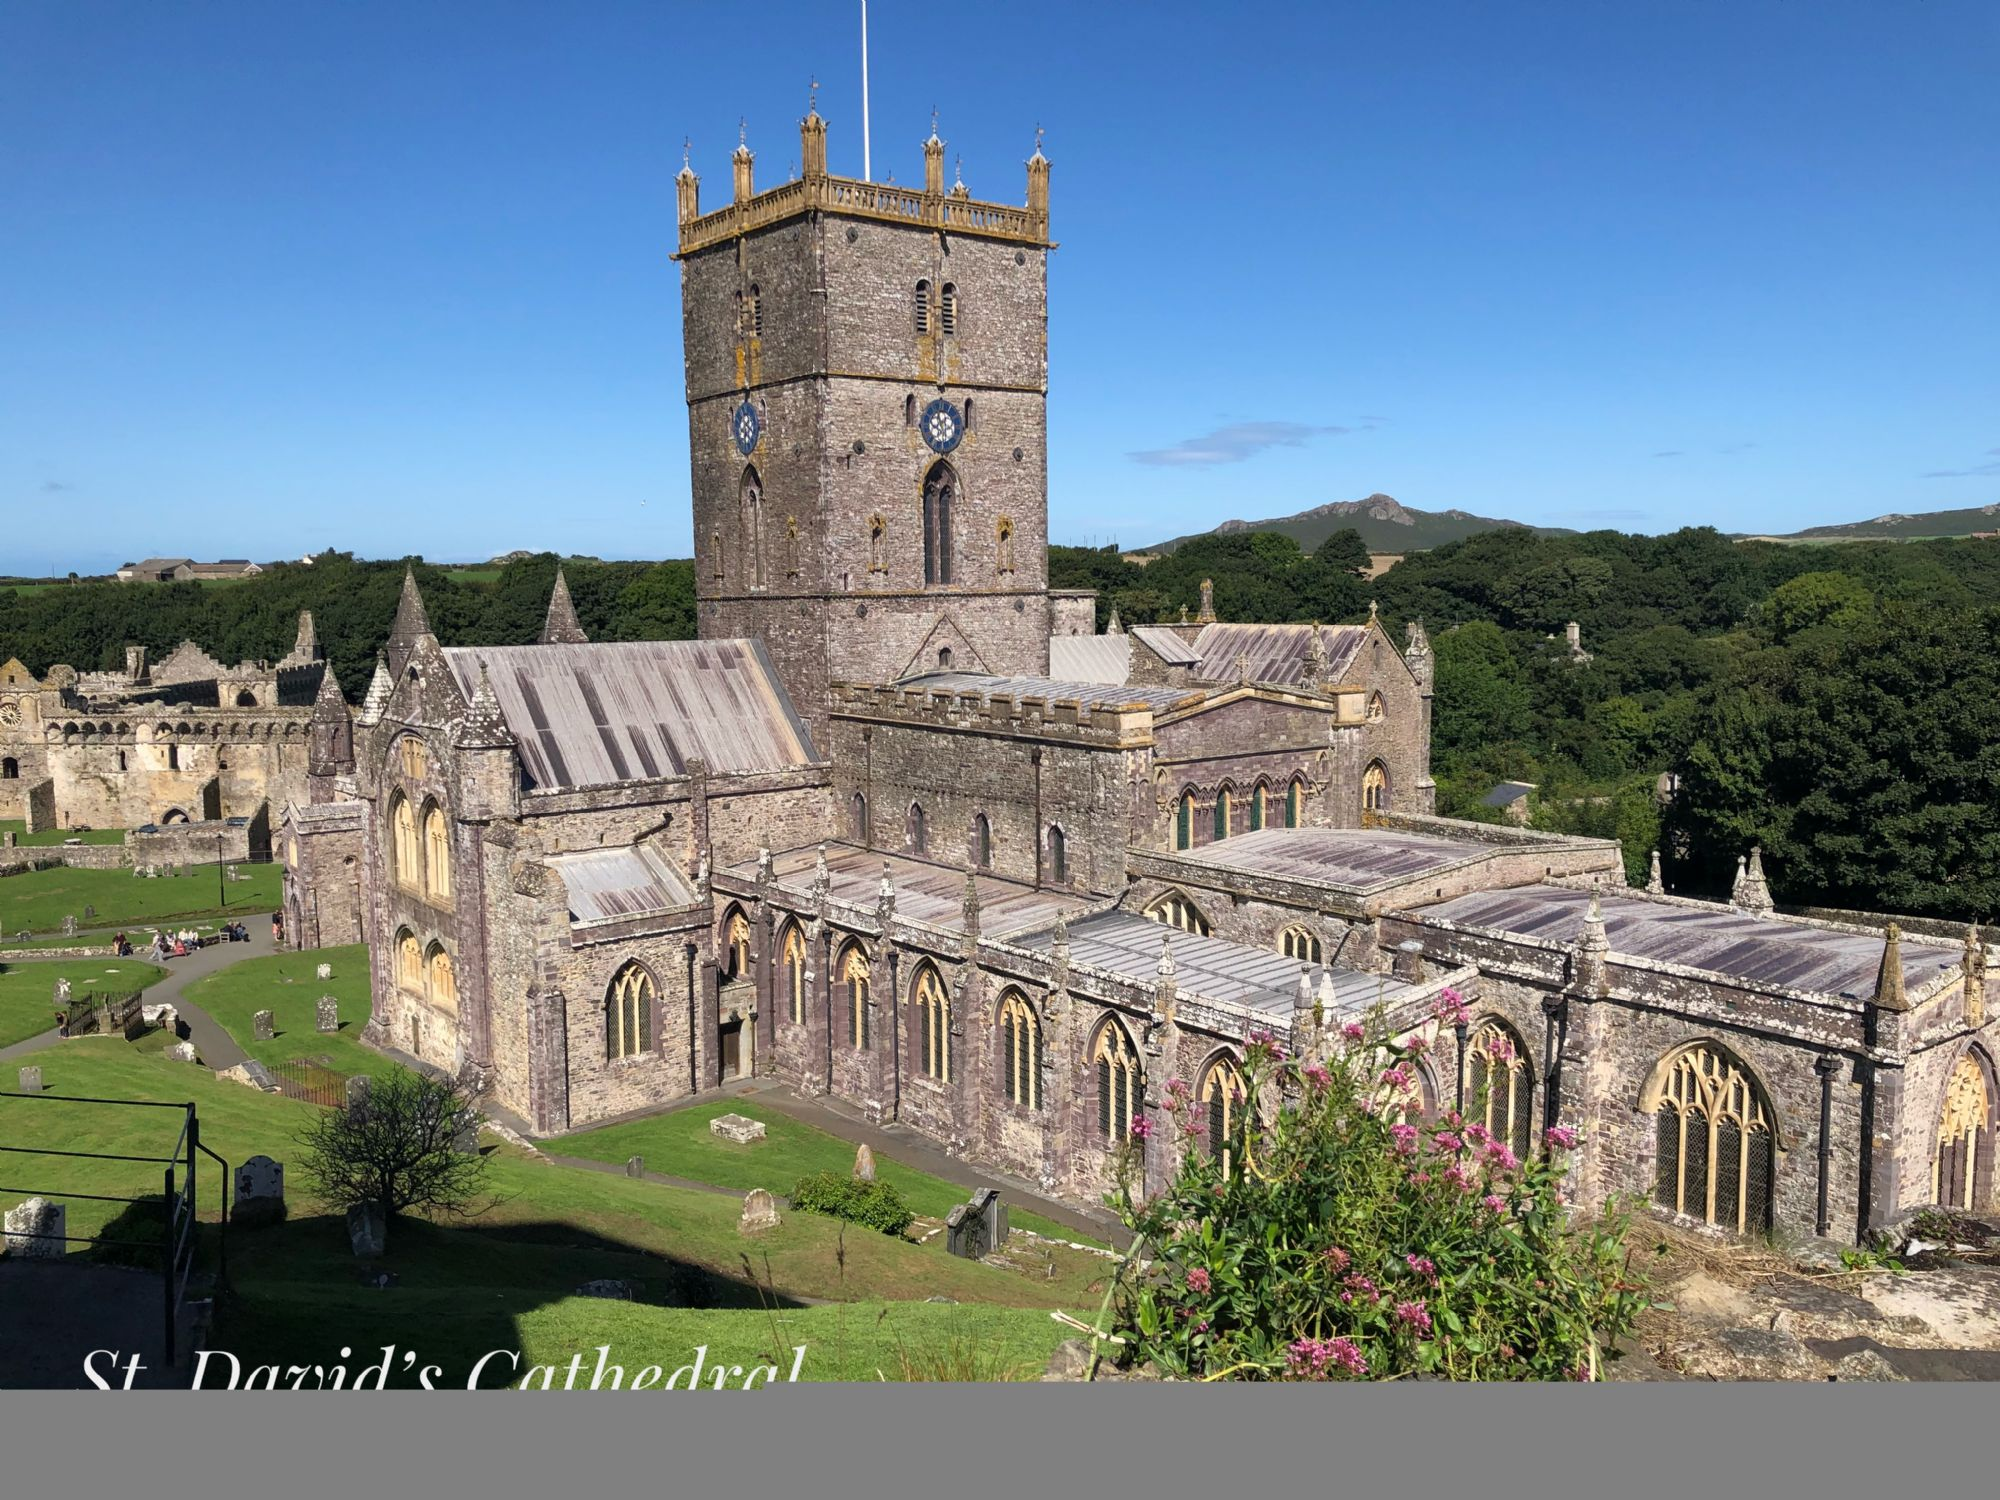 St. David?s Cathedral